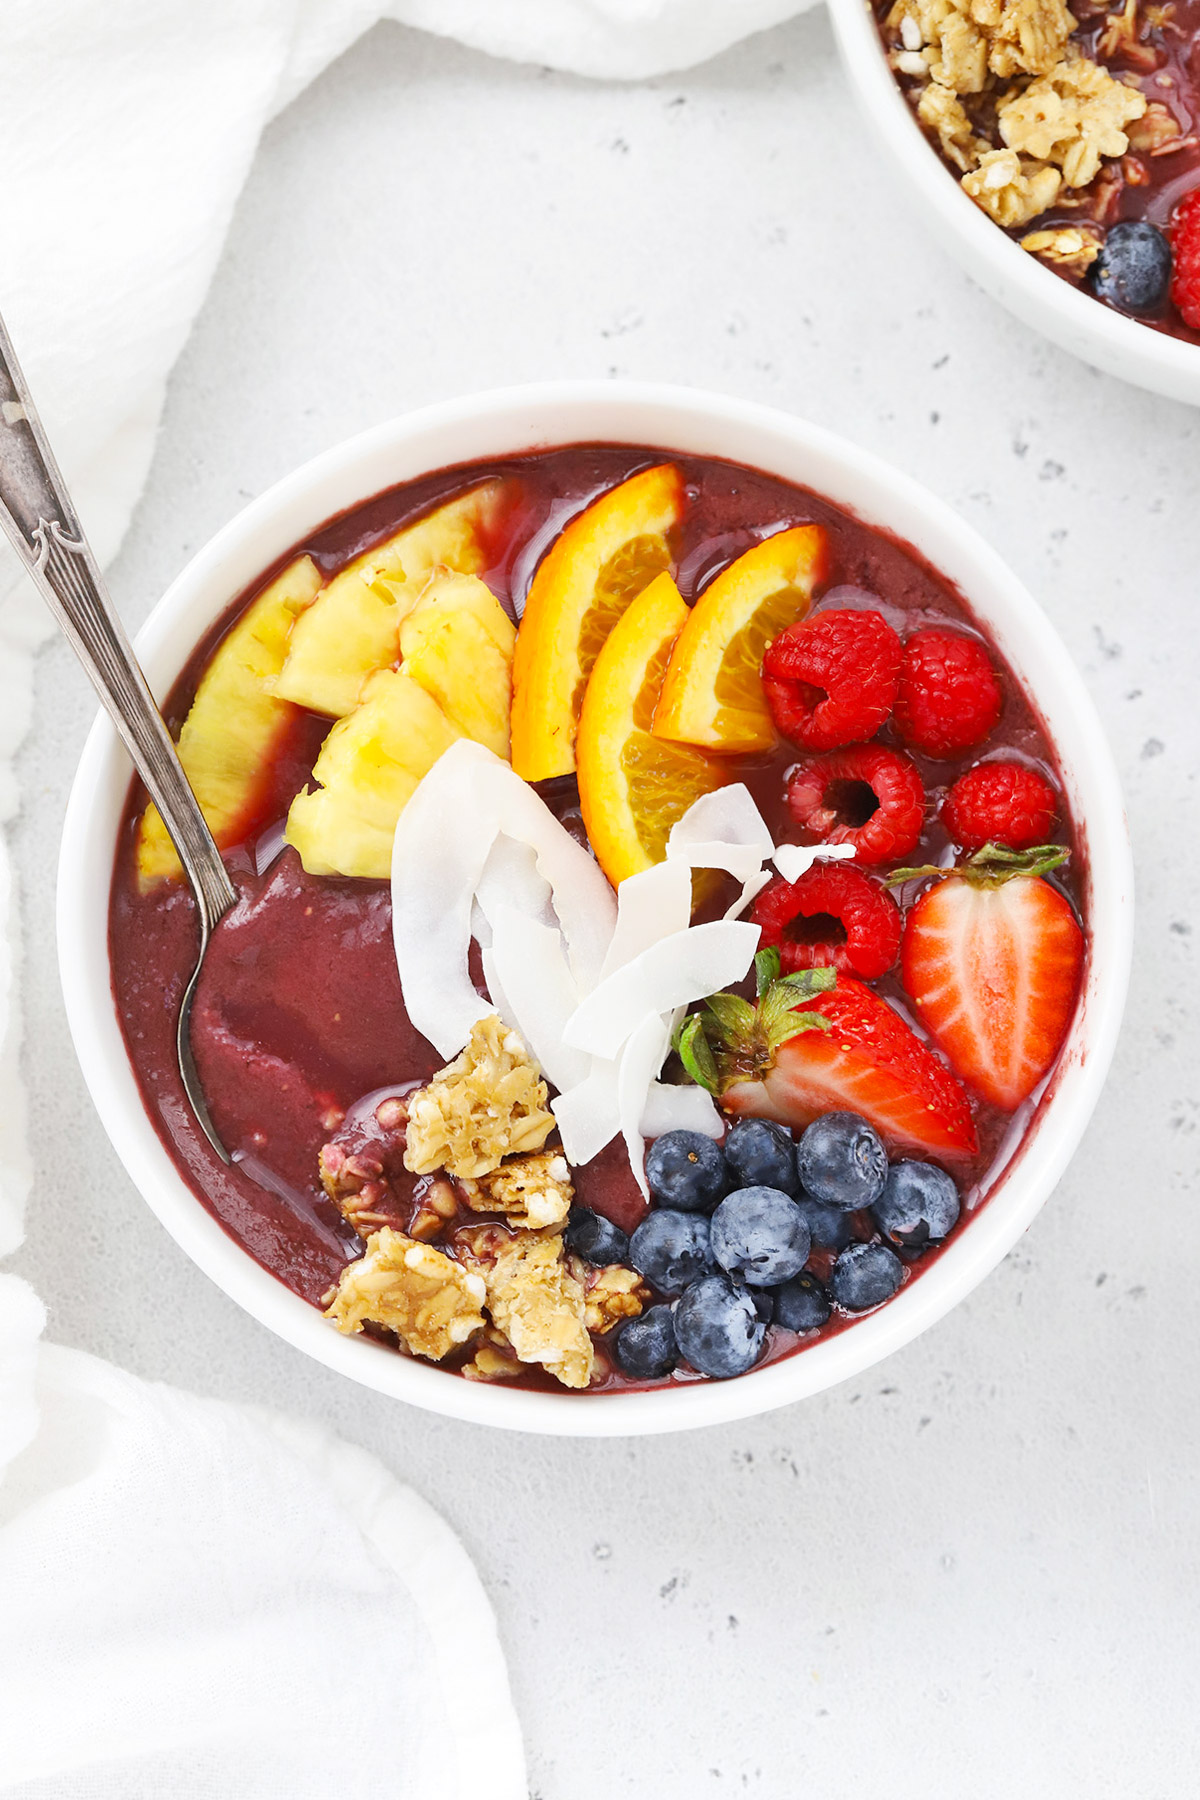 Overhead view of a pineapple acai bowl with fresh berries, pineapple, orange slices, shaved coconut, granola, mango on a white background